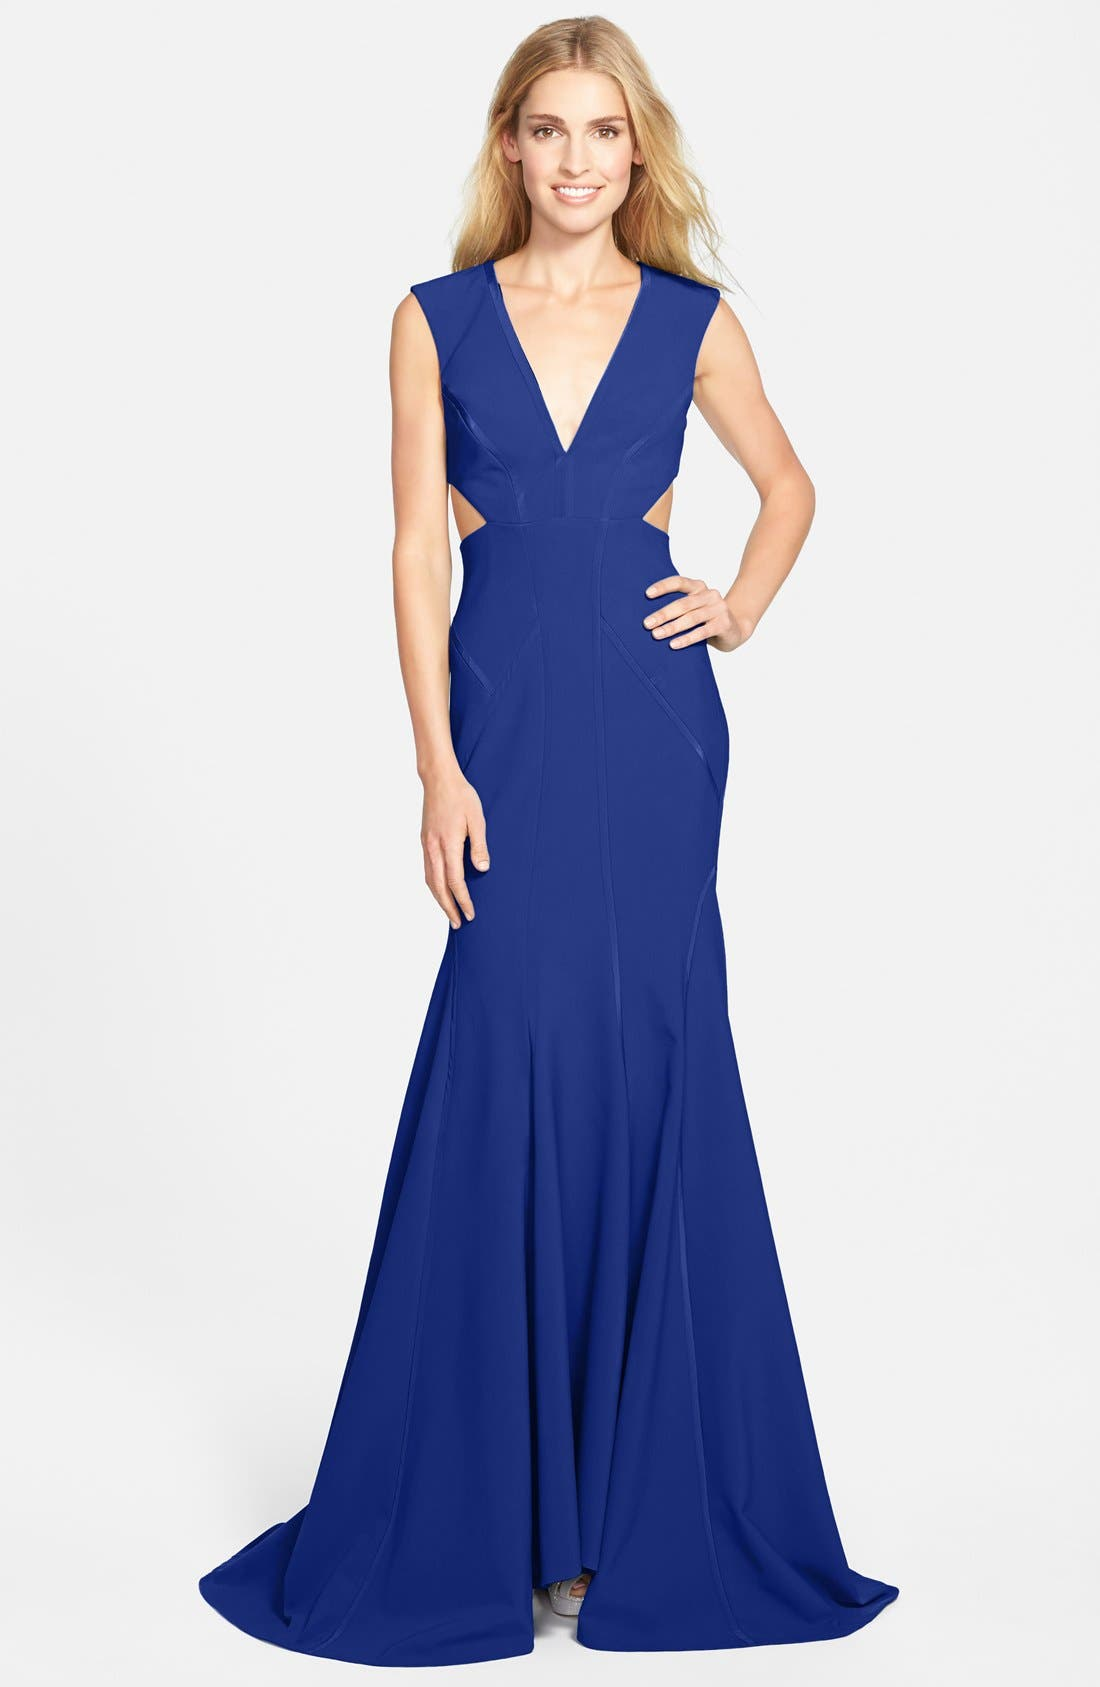 Alternate Image 1 Selected - Nicole Miller Cutout Crepe Mermaid Gown